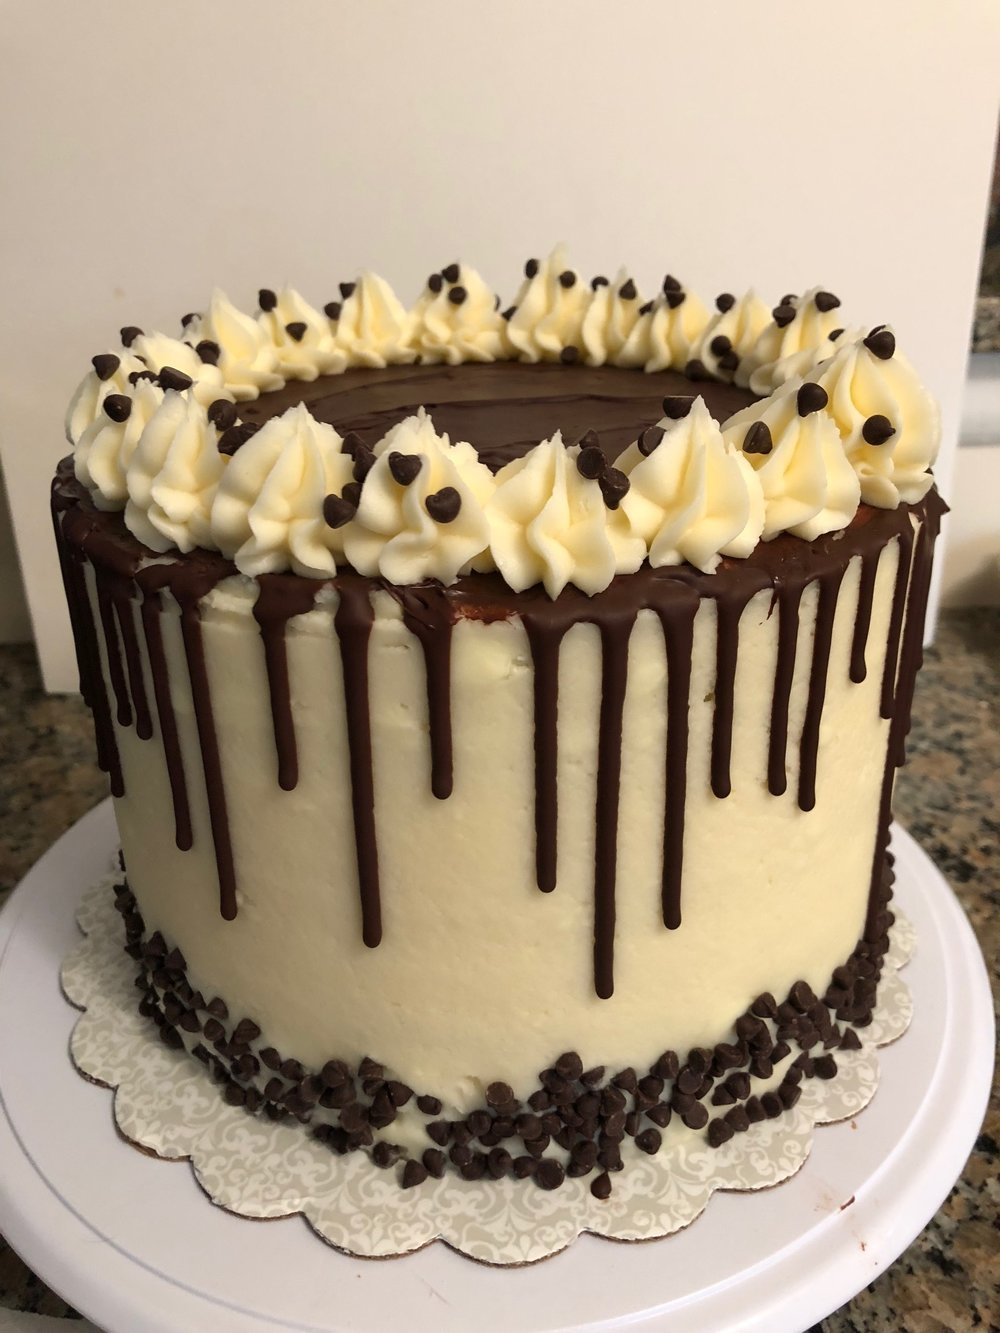 Cannoli Cake   Vanilla or chocolate layers with cannoli filling in between and a chocolate drizzle on the outside of the cake.